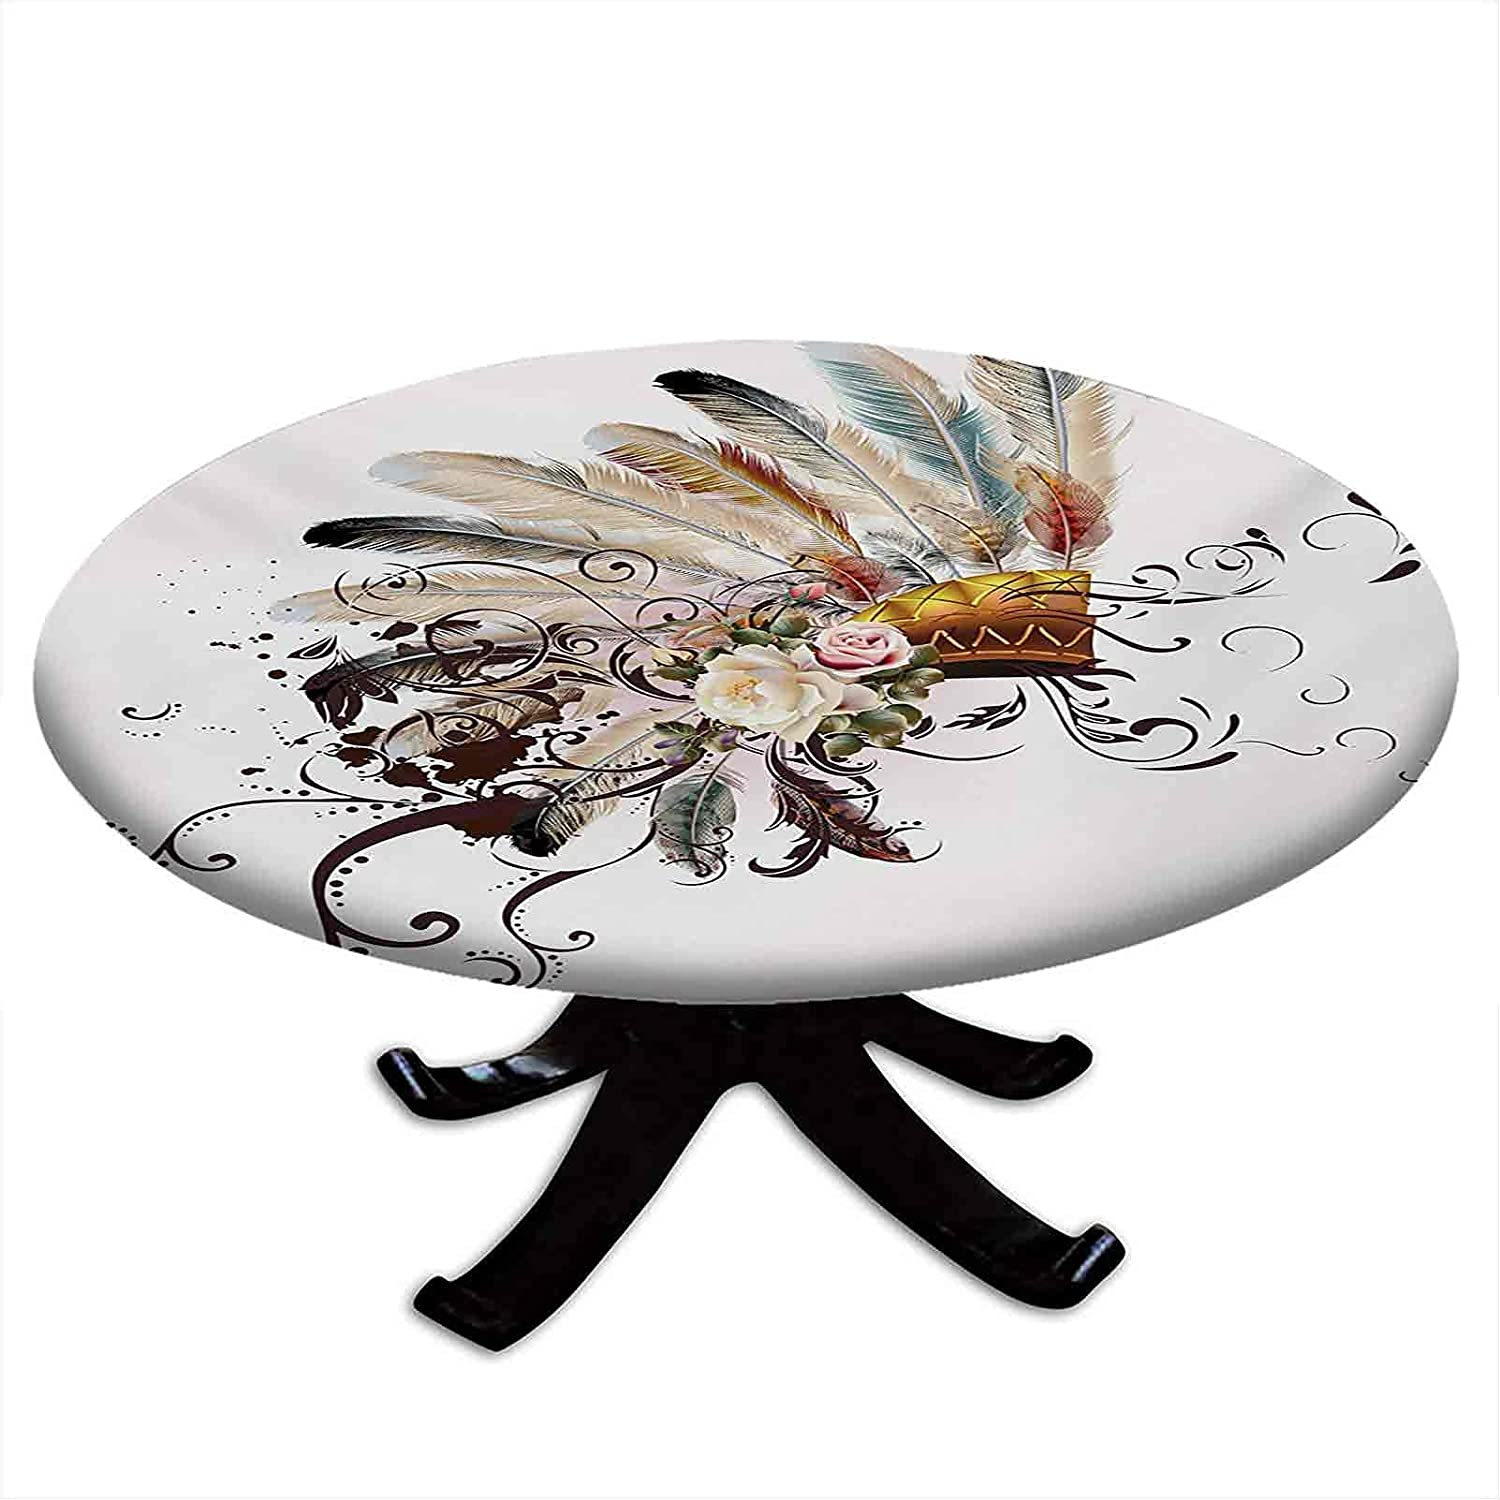 Round Fitted Feather Max ! Super beauty product restock quality top! 78% OFF Tablecloth Native with Flo American Symbol